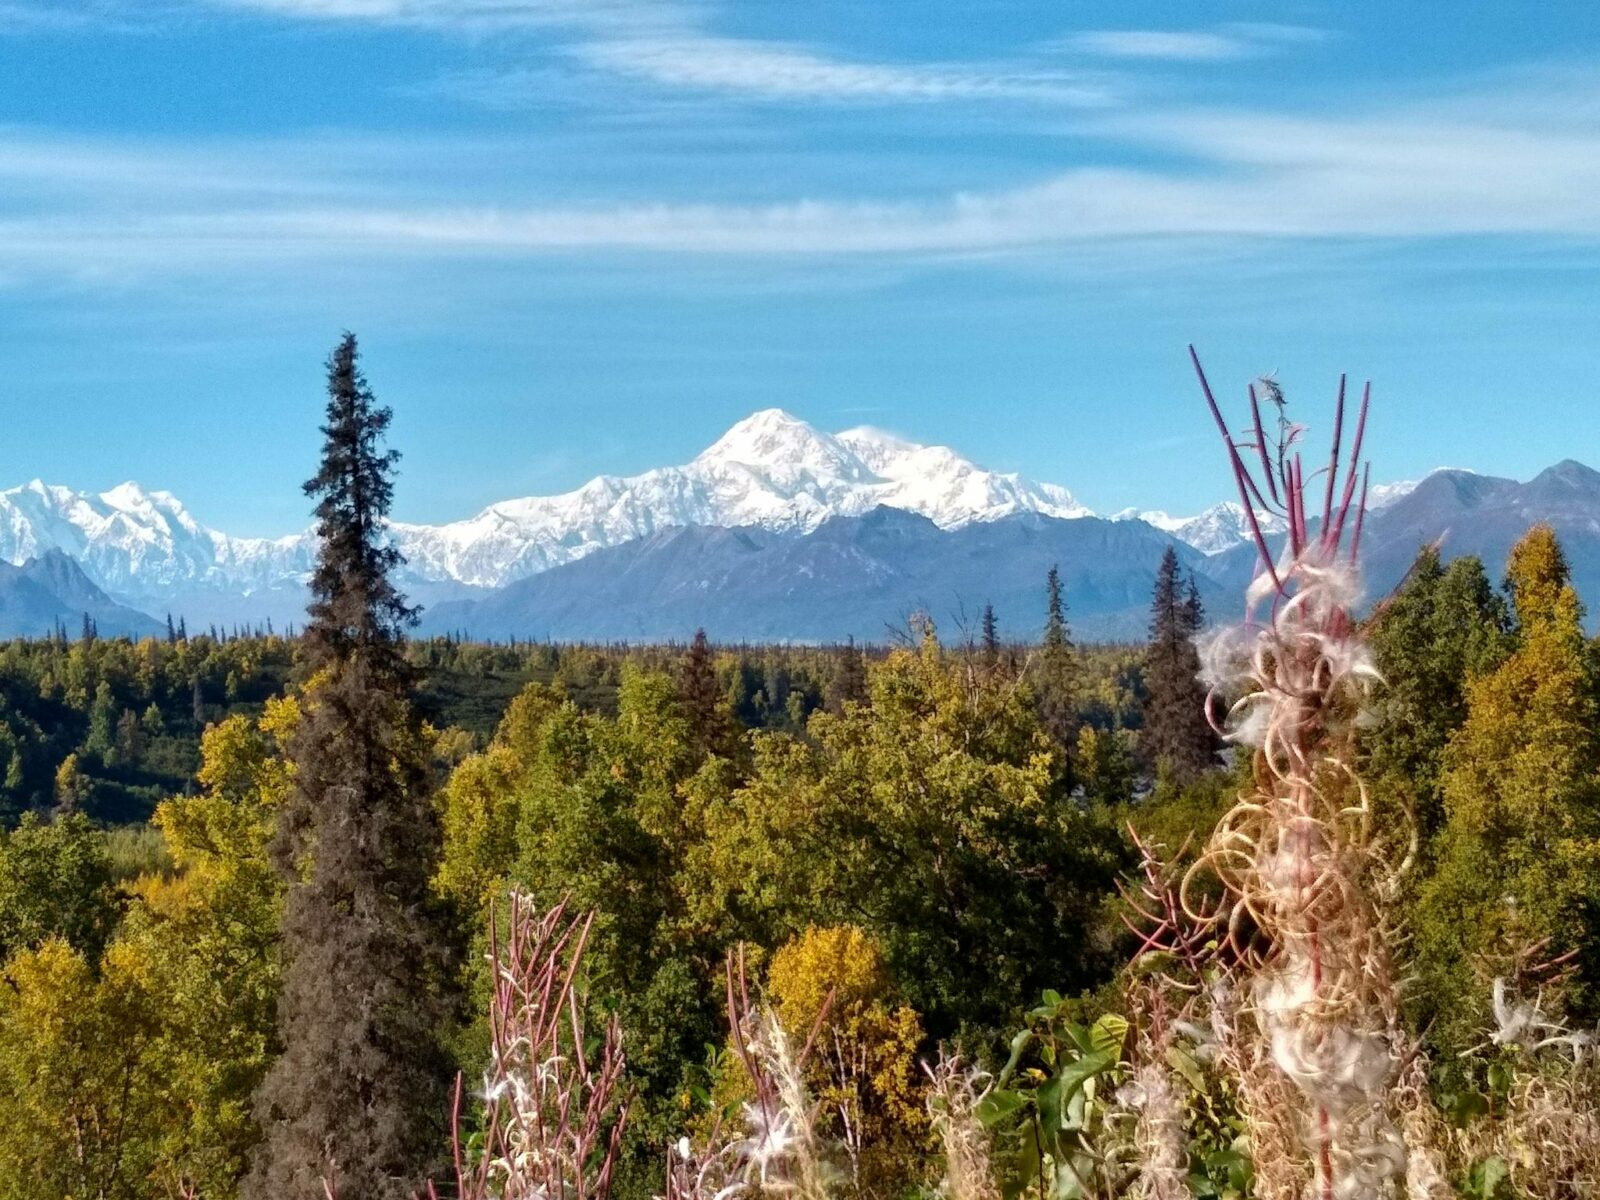 Denali rises above the Susitna river on a sunny day. There are trees in the foreground. The Denali lookout is part of the Alaska itinerary